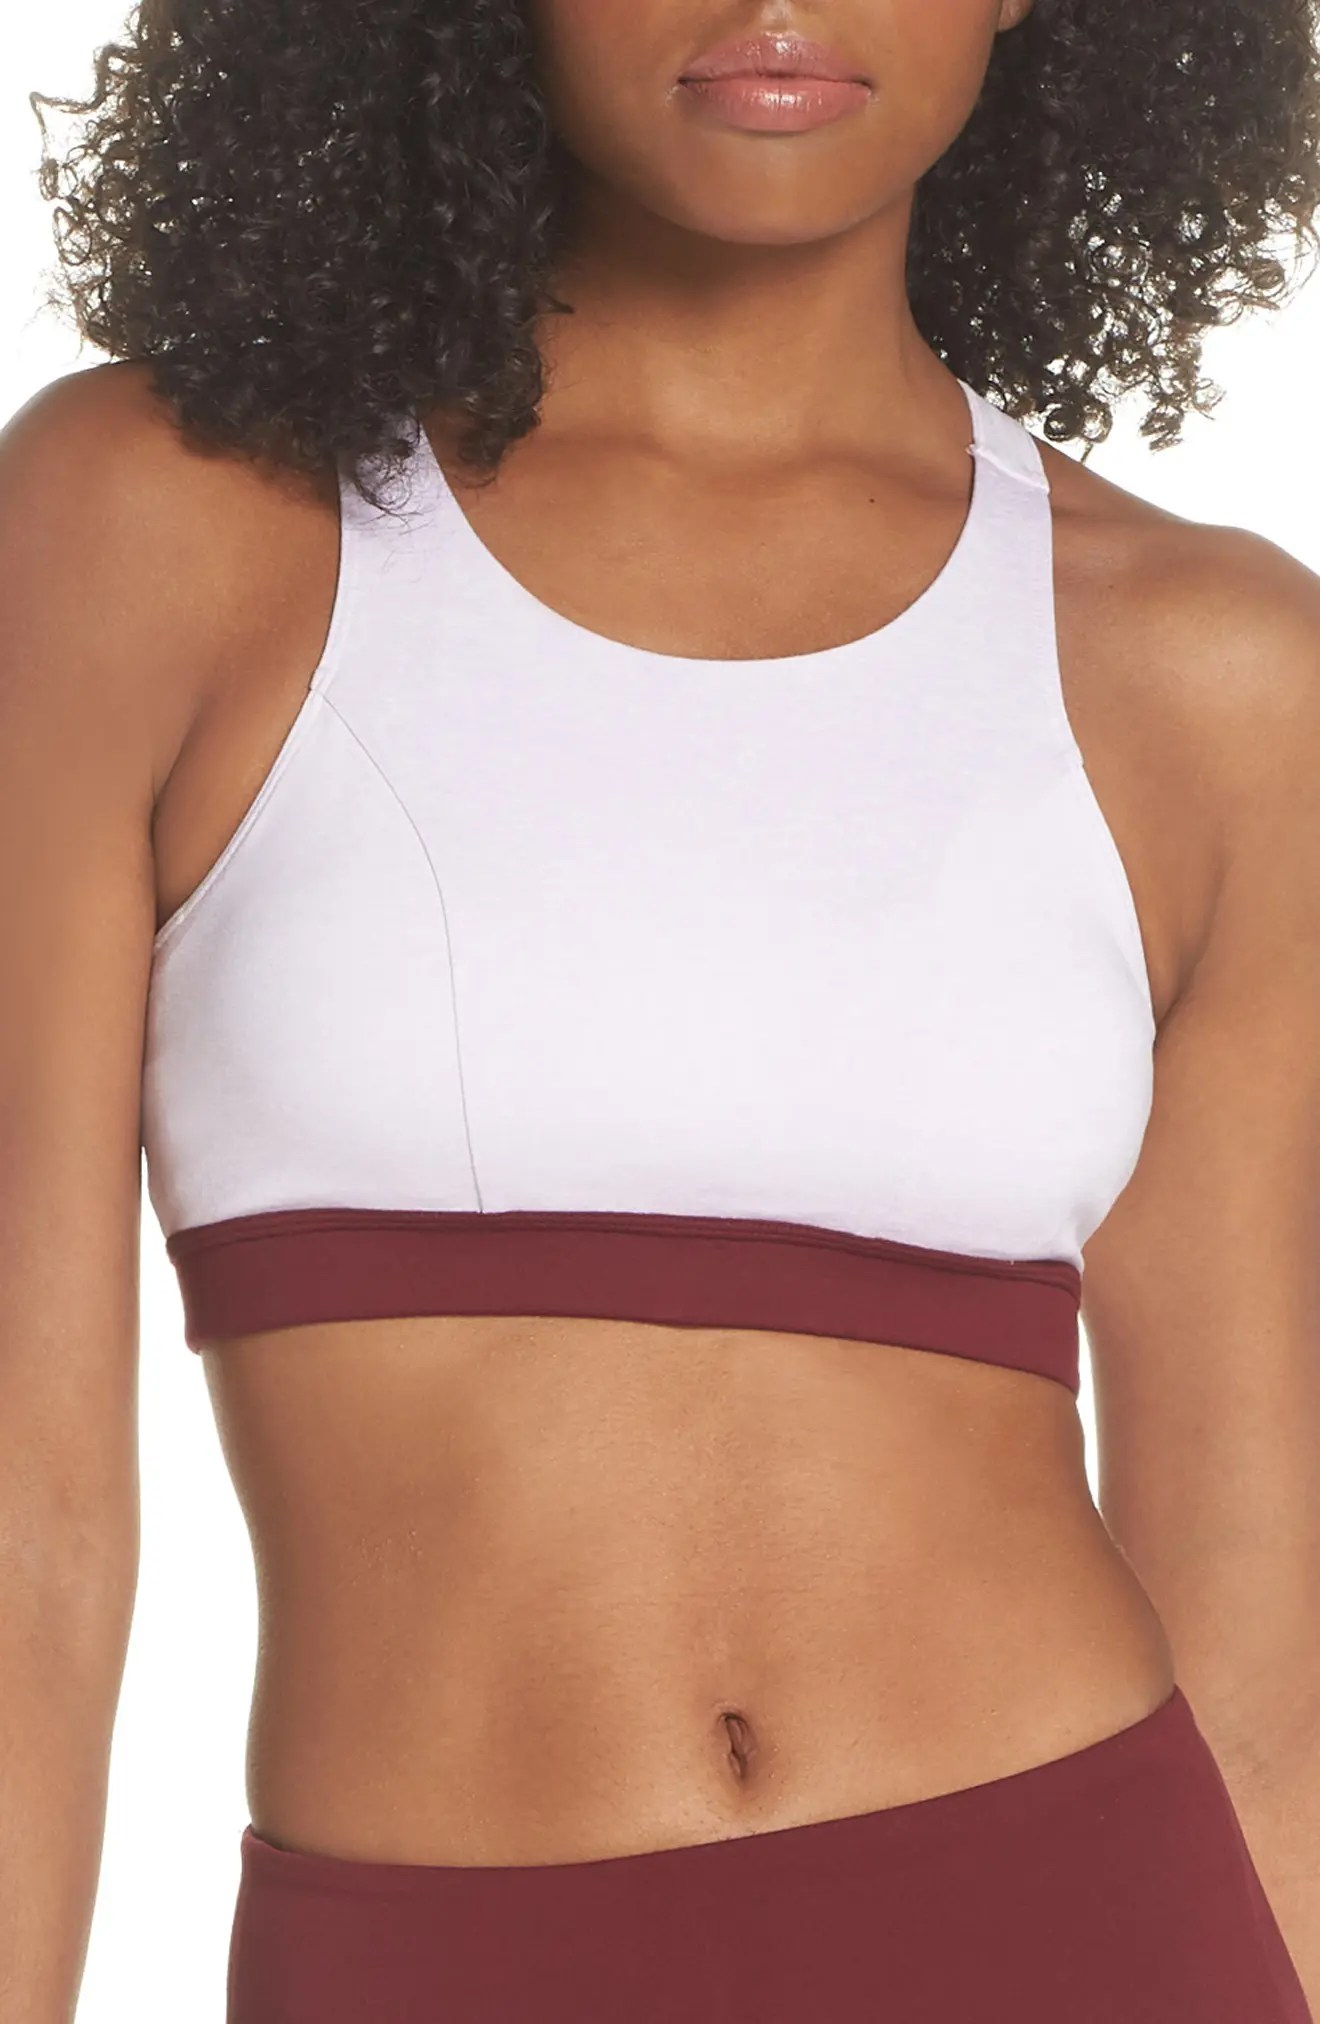 Zella sheer drama sports bra also women   bras nordstrom rh shoprdstrom